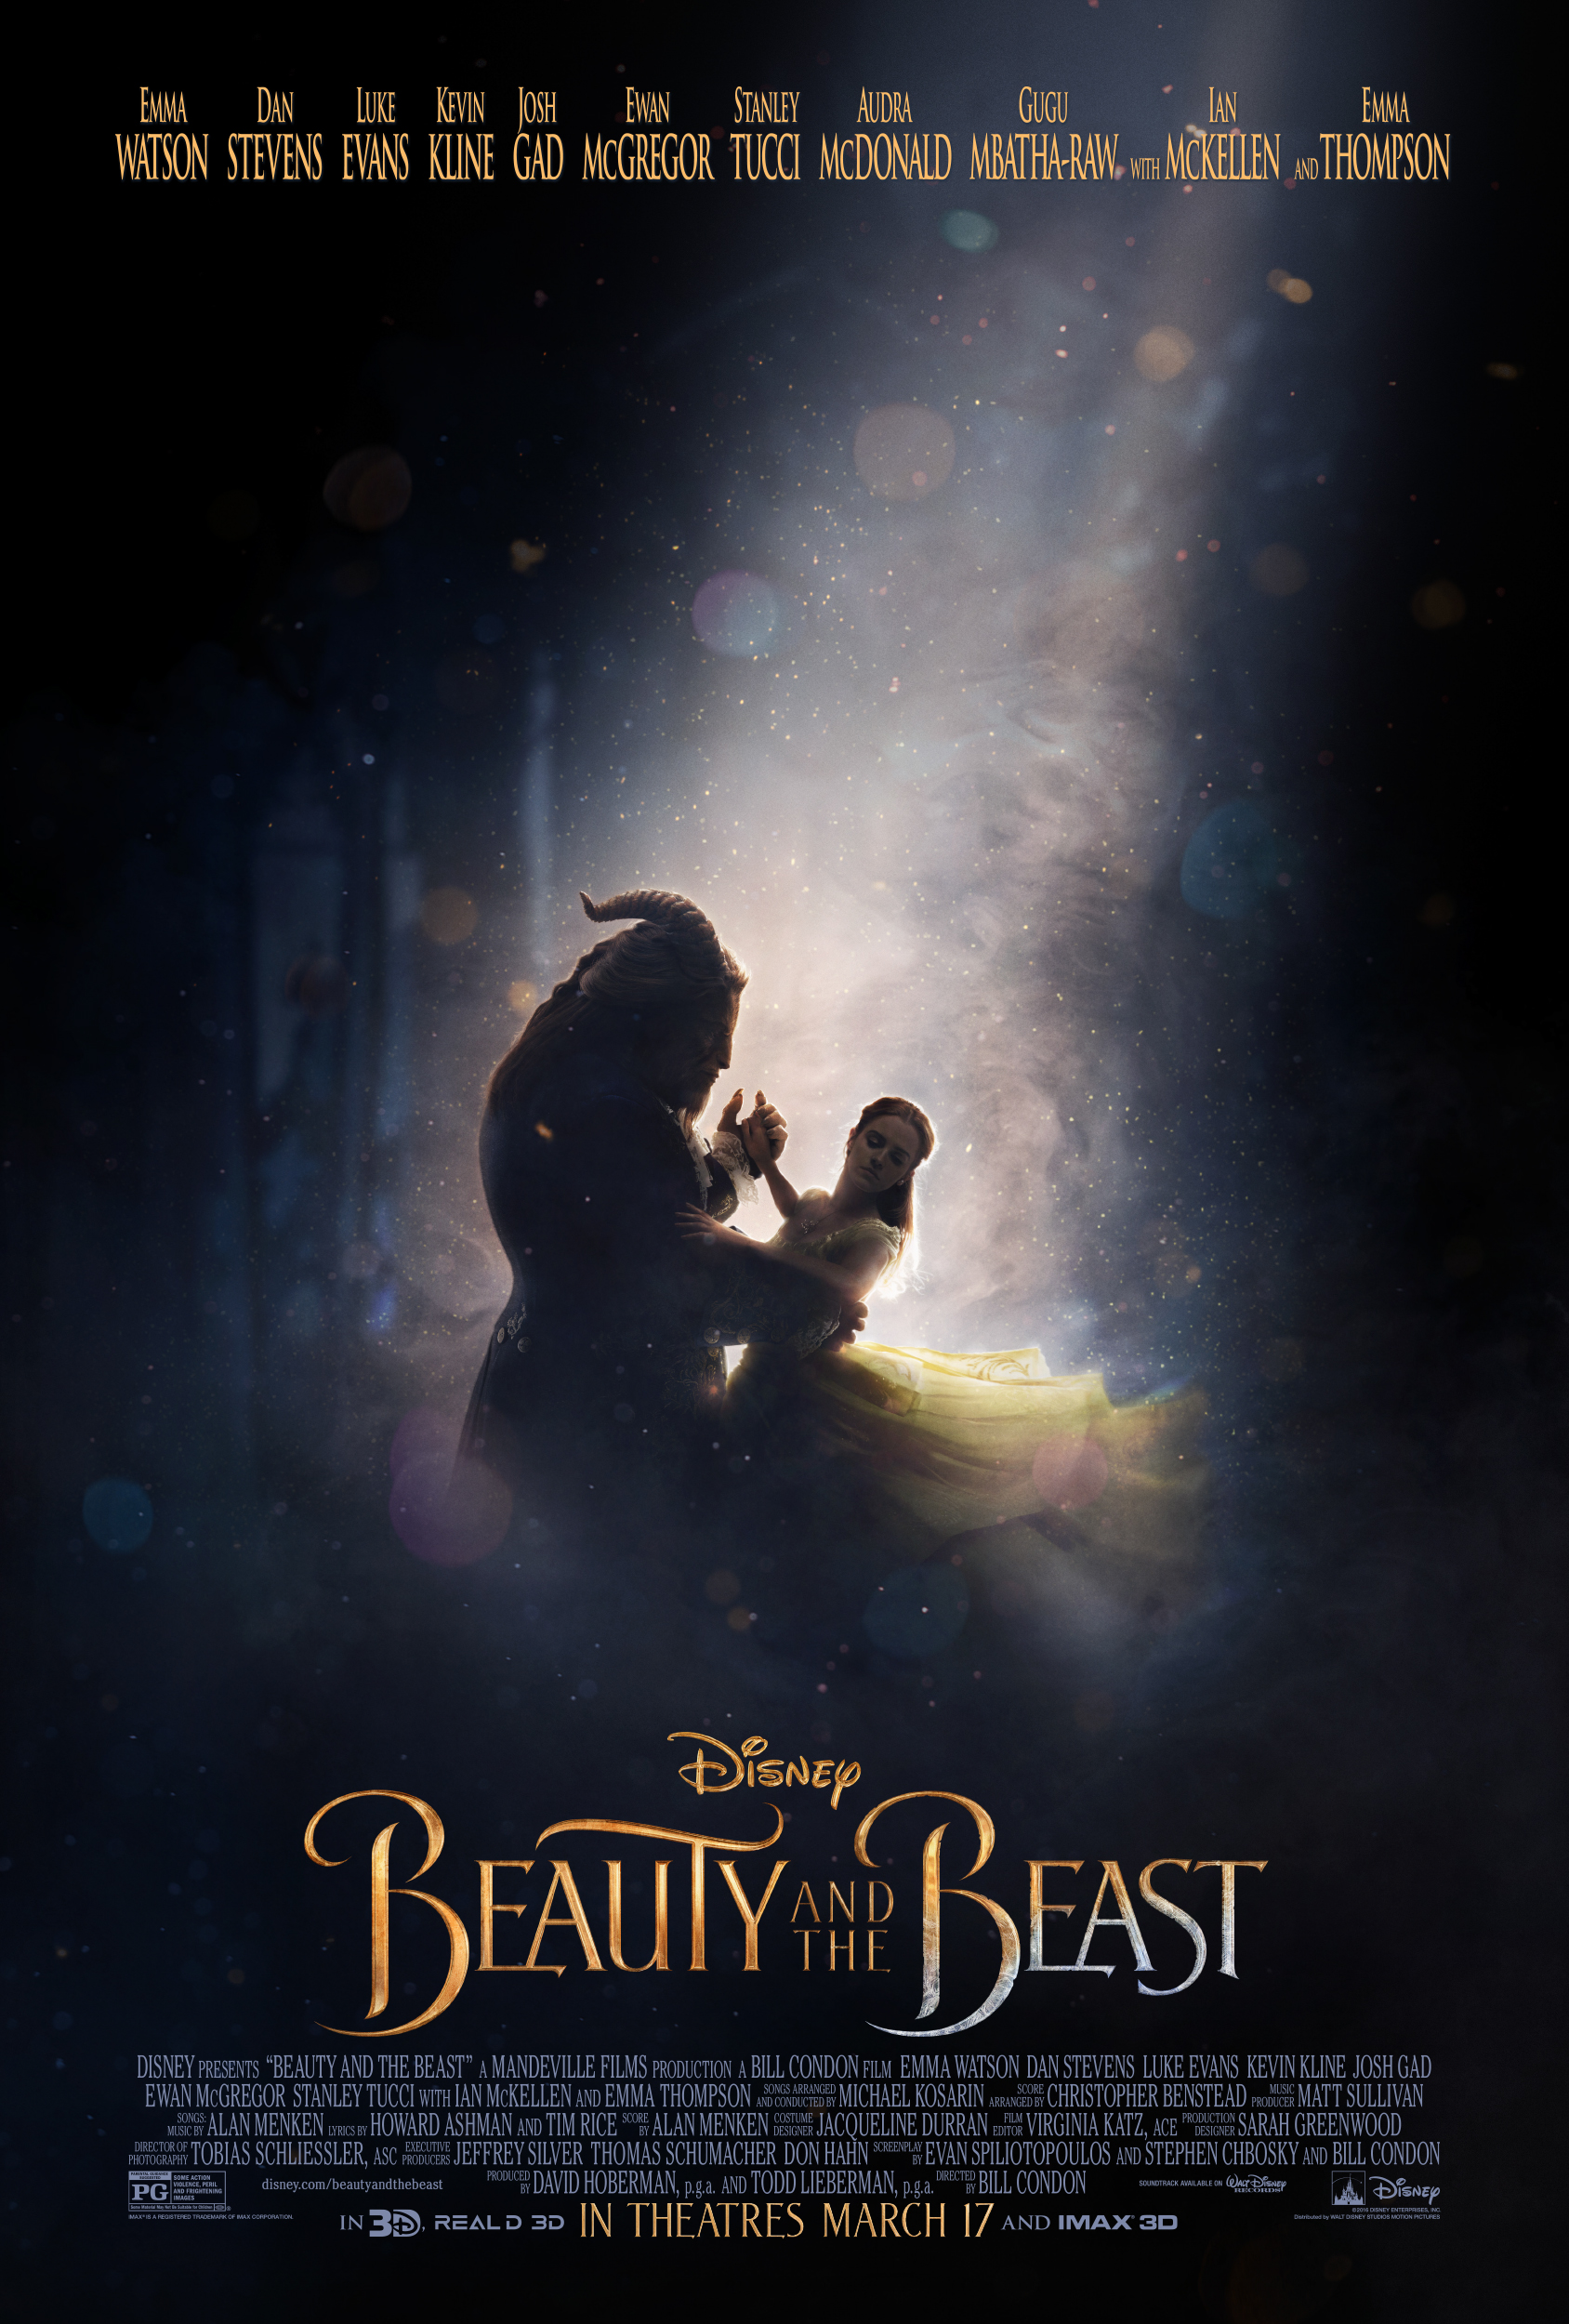 BEAUTY AND THE BEAST - New Poster is Here